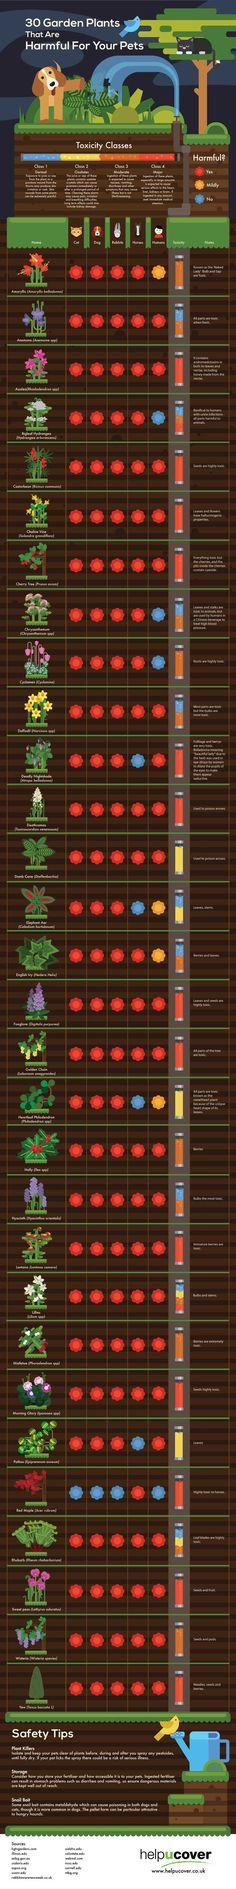 Letting your pets out in your garden may look harmless, but not all plants are harmless for pets. This infographic from helpucover covers harmful plants for pets: